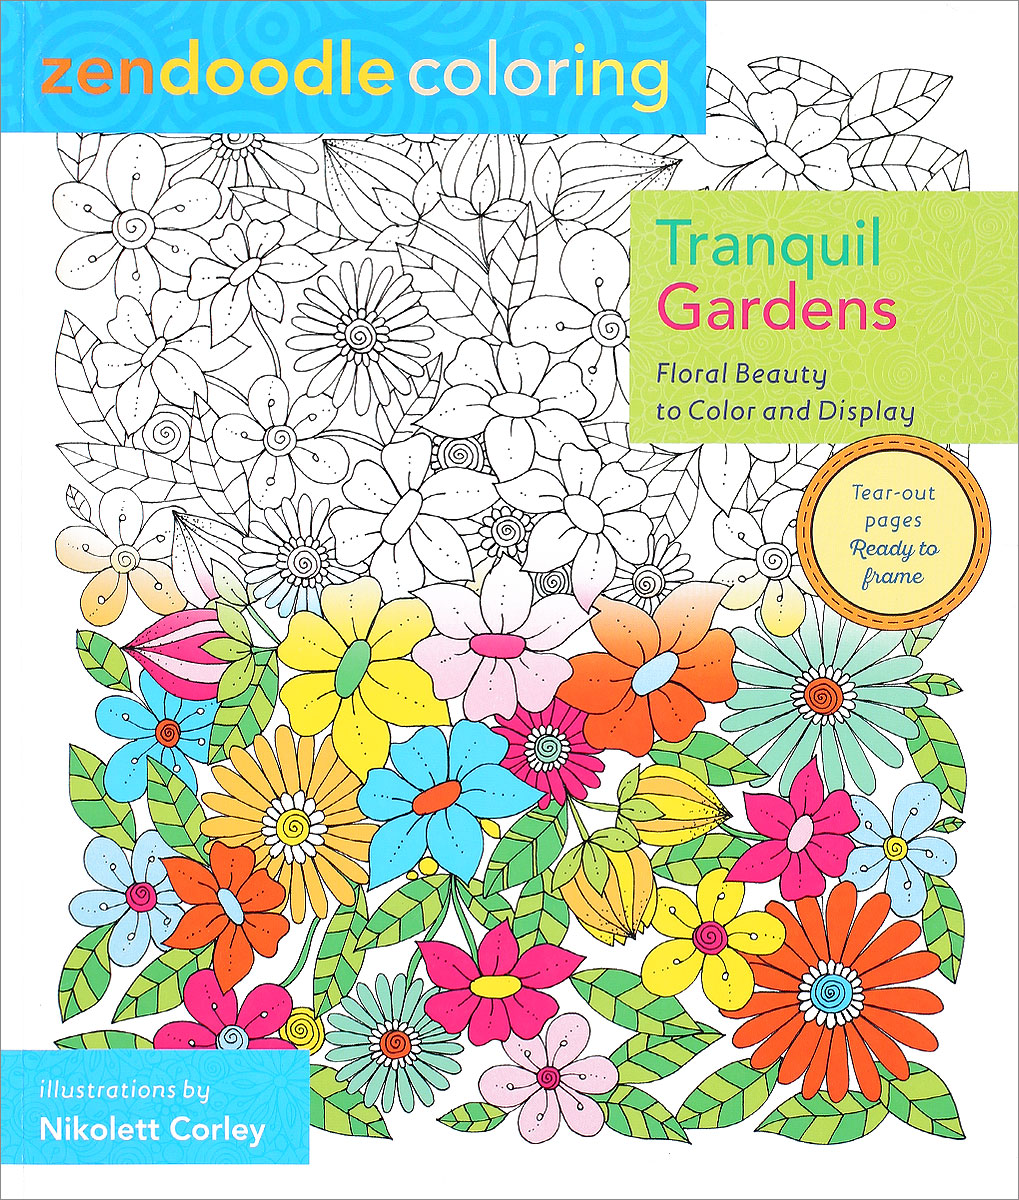 Zendoodle coloring enchanting gardens - Zendoodle Coloring Tranquil Gardens Floral Beauty To Color And Display